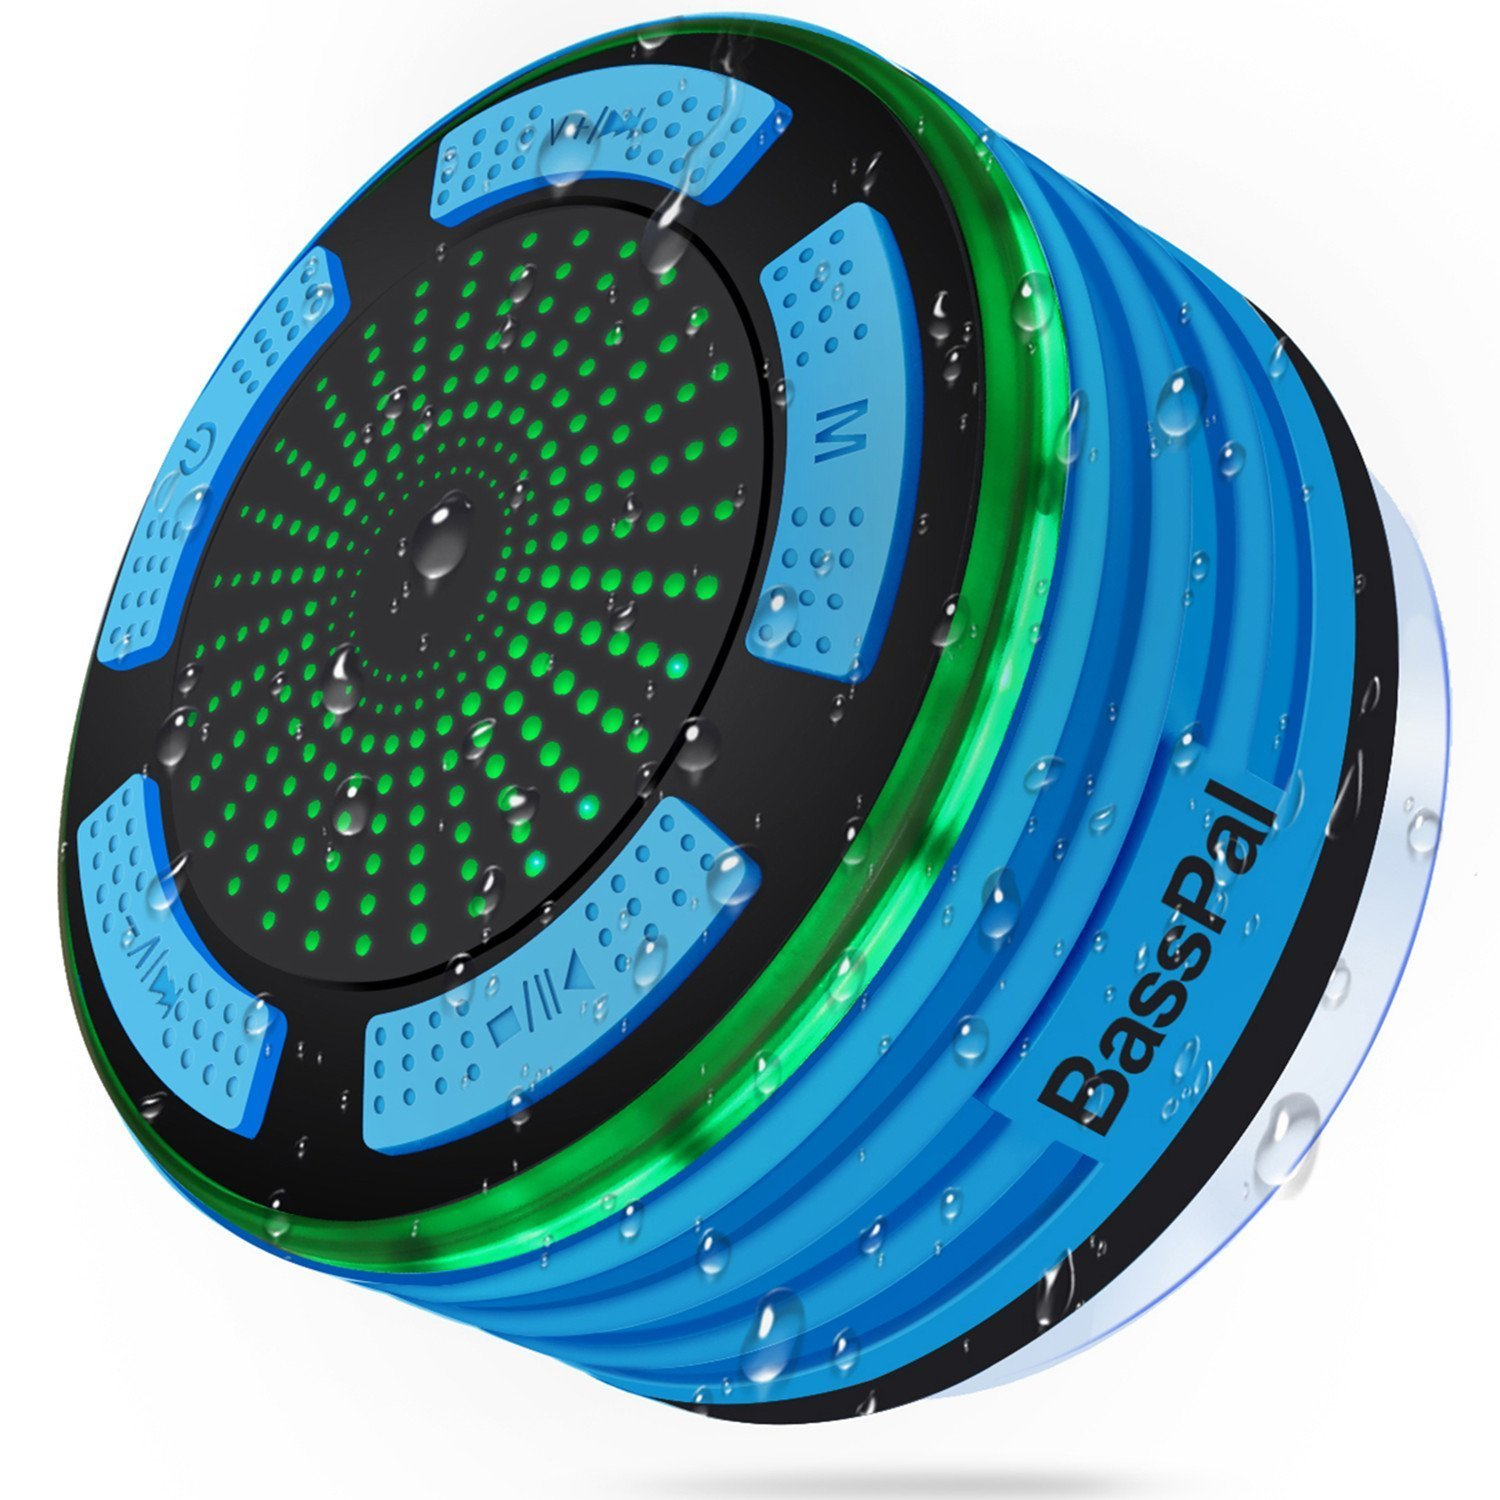 BassPal Shower Speaker Waterpoof IPX7, Portable Wireless Bluetooth Speakers with Radio, Suction Cup & LED Mood Lights, Super Bass HD Sound Perfect Pool, Beach, Bathroom, Boat, Outdoors (01.Blue) by BassPal